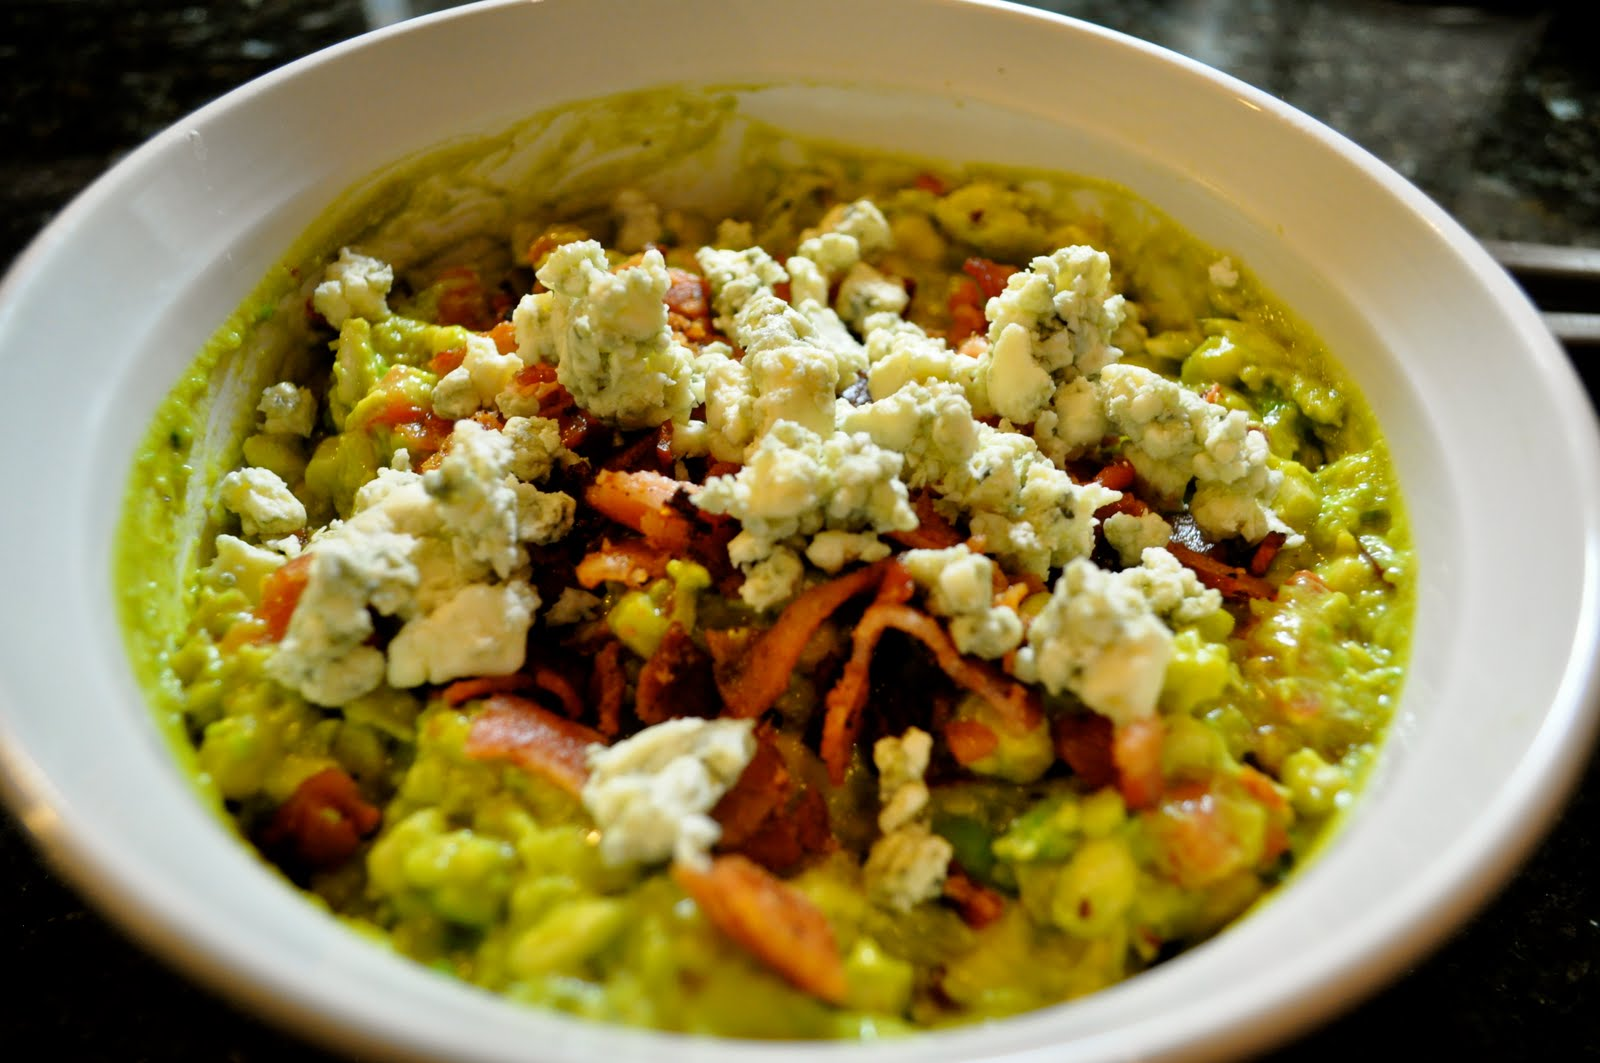 cobb salad cobb salad with grains easy cobb salad cobb salad dip ...